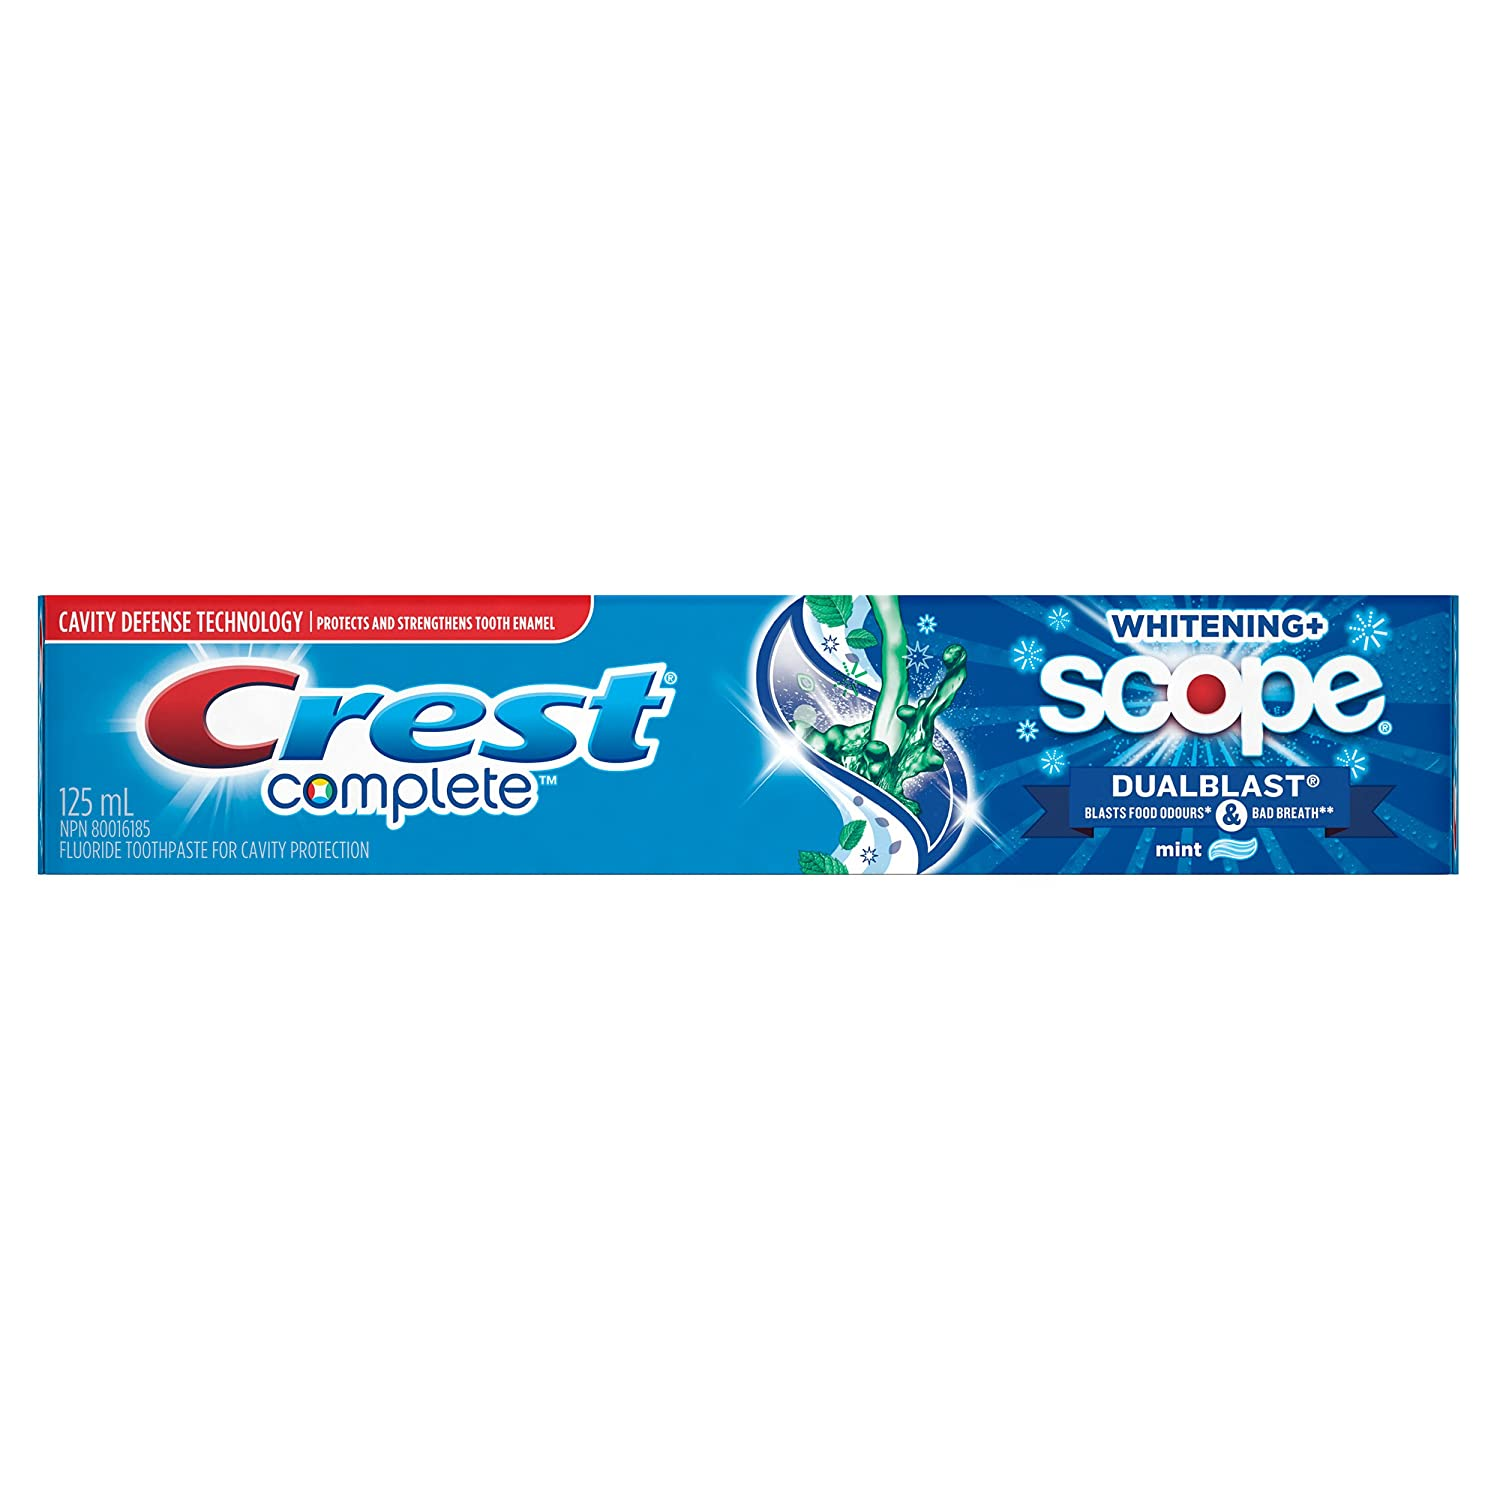 Crest Complete Extra White With Scope Dual-Blast Toothpaste/3D White Luxe Glamorous Toothpaste(Packaging May Vary)